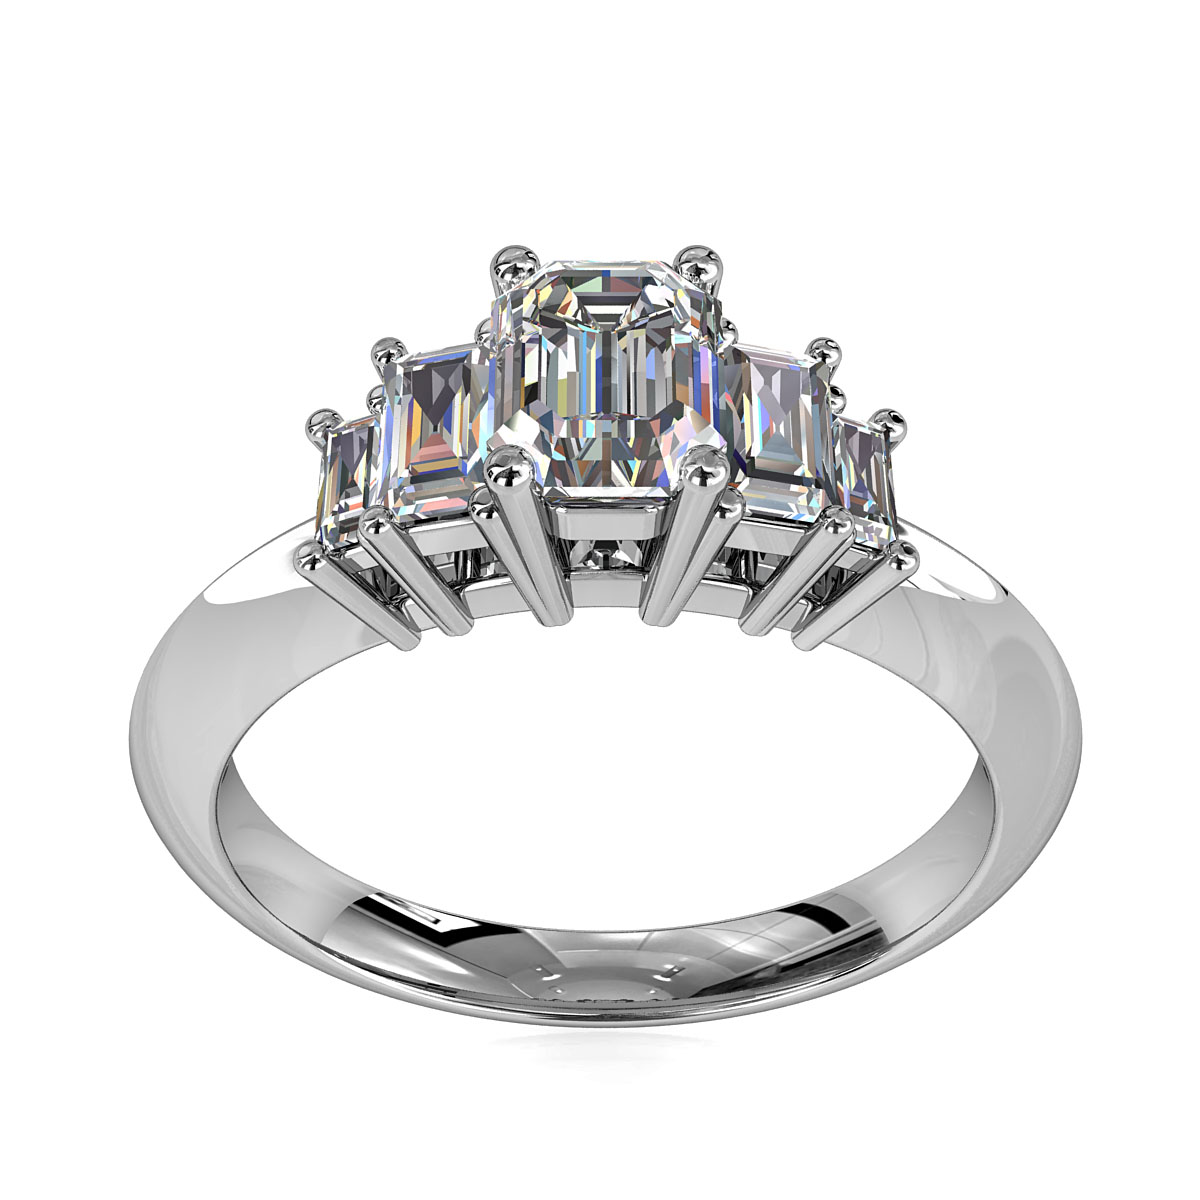 Emerald Cut Trilogy Diamond Engagement Ring, 5 Stone Emerald Cut Stones on Knife Edge Band.